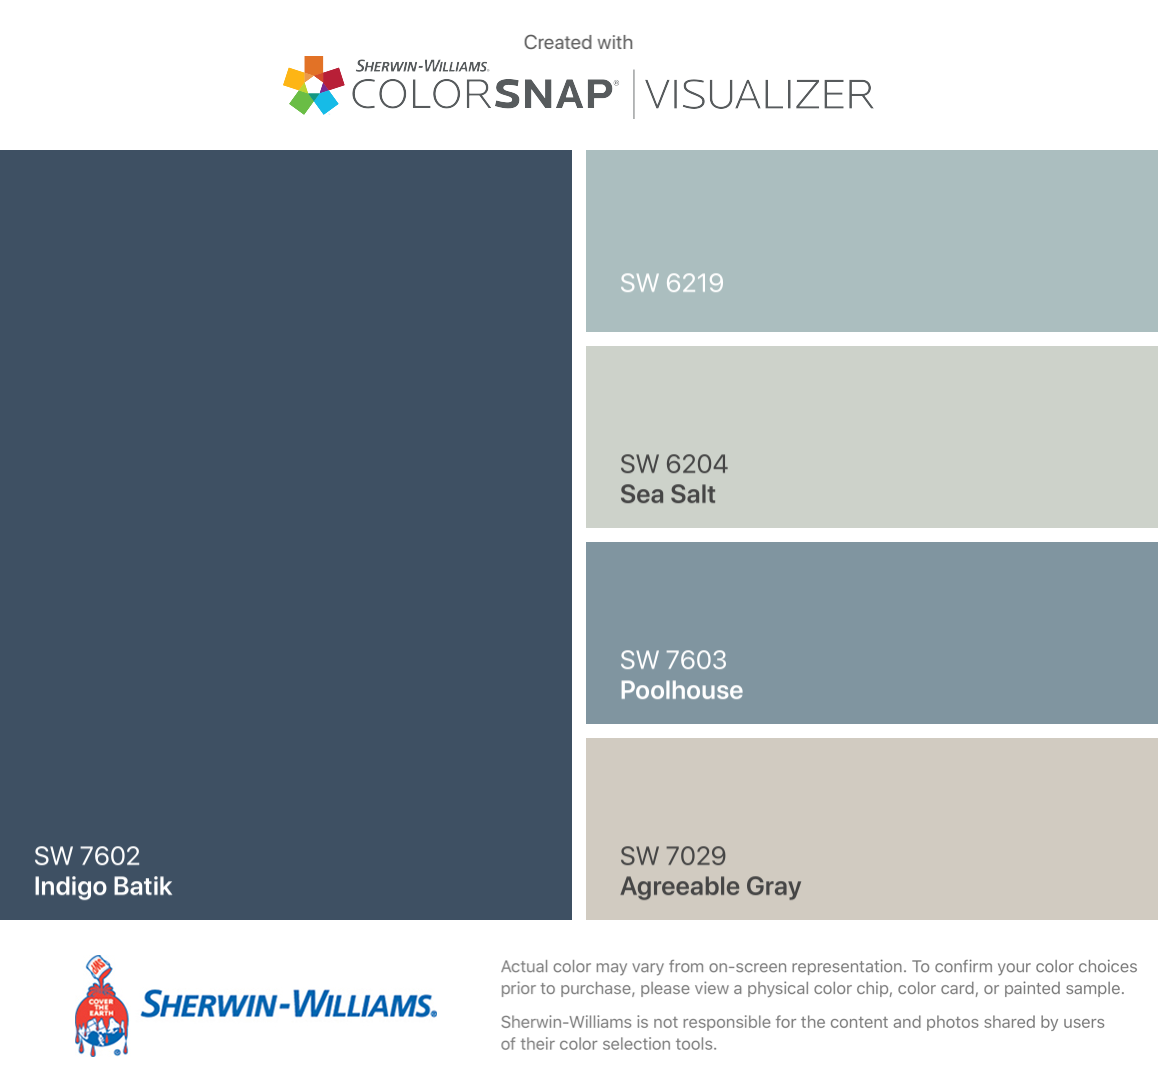 I Found These Colors With Colorsnap Agreeable Gray